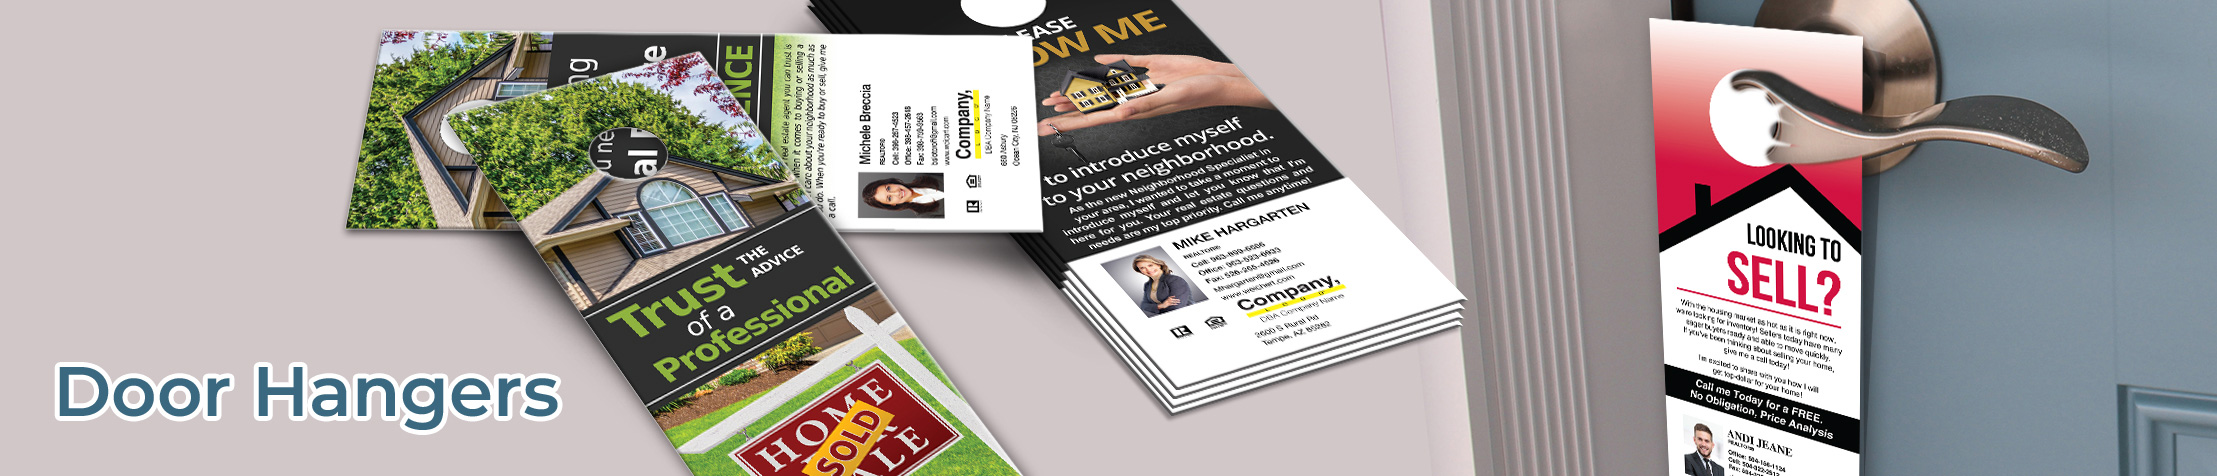 Weichert Real Estate Door Hangers - Weichert Door Knockers for Realtors | BestPrintBuy.com